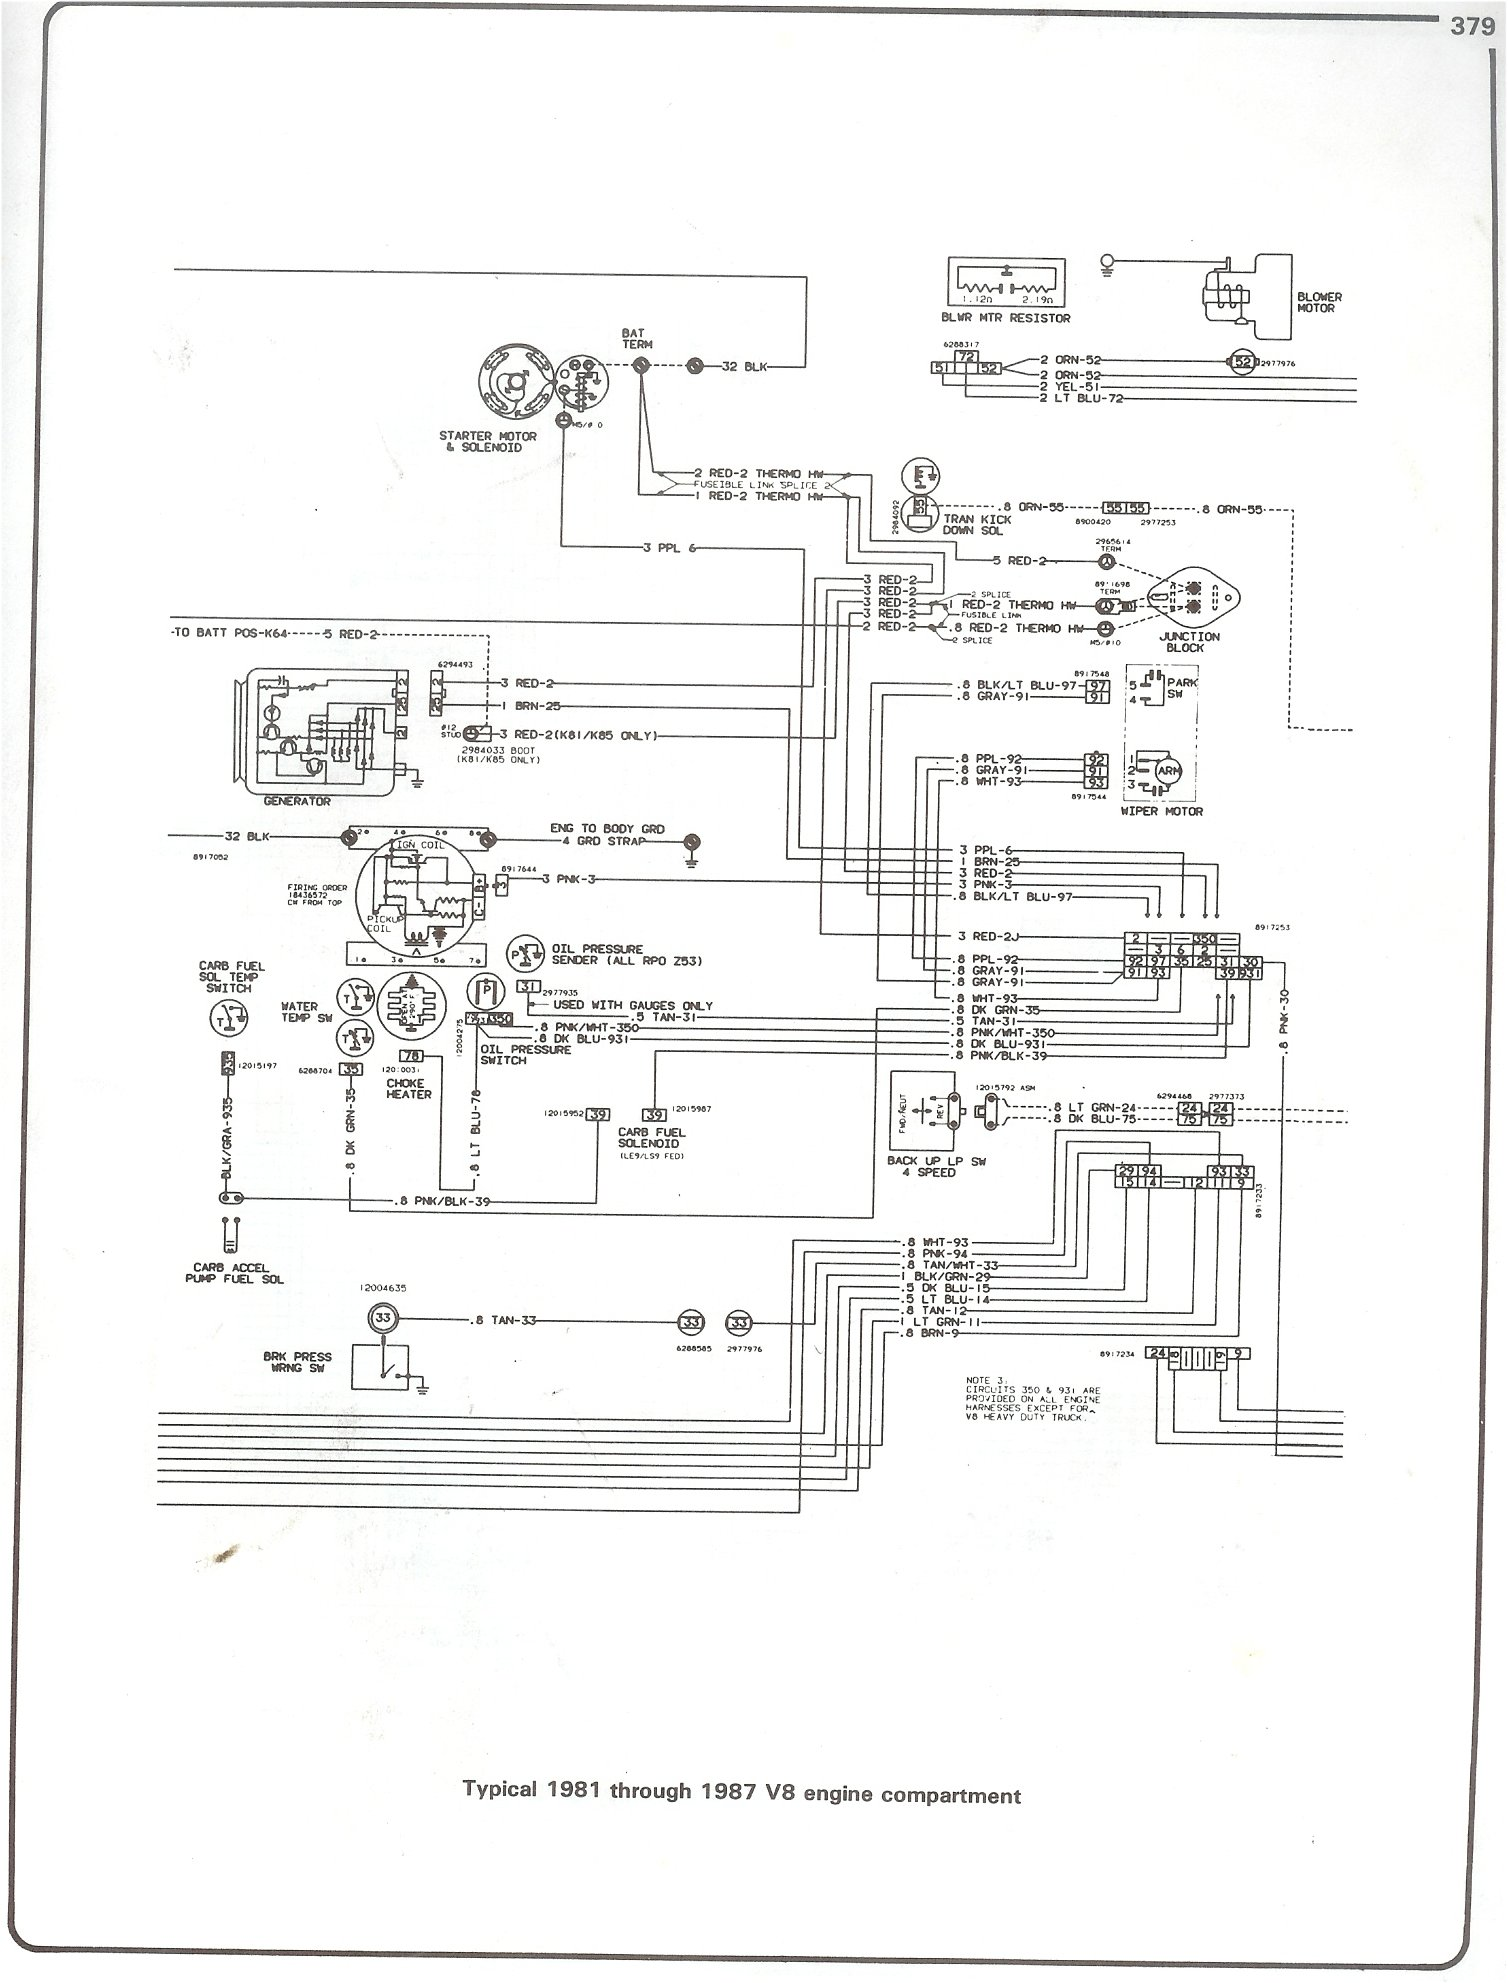 Fuse Diagram For 1986 Silverado C 10 - Wiring Diagram Data on 1974 corvette fuse panel diagram, 1981 corvette wiring diagram, 81 corvette horn relay, 1983 chevy fuse diagram, 81 corvette dash, 81 corvette fuse block, 82 corvette fuse panel diagram, 1981 corvette fuse diagram, 81 corvette blower motor, 81 corvette headlight, 1980 corvette fuse block diagram, 81 corvette tail lights, 1985 corvette electrical diagram, 1978 corvette fuse diagram, 1979 chevrolet corvette fuse diagram, 81 corvette hood,